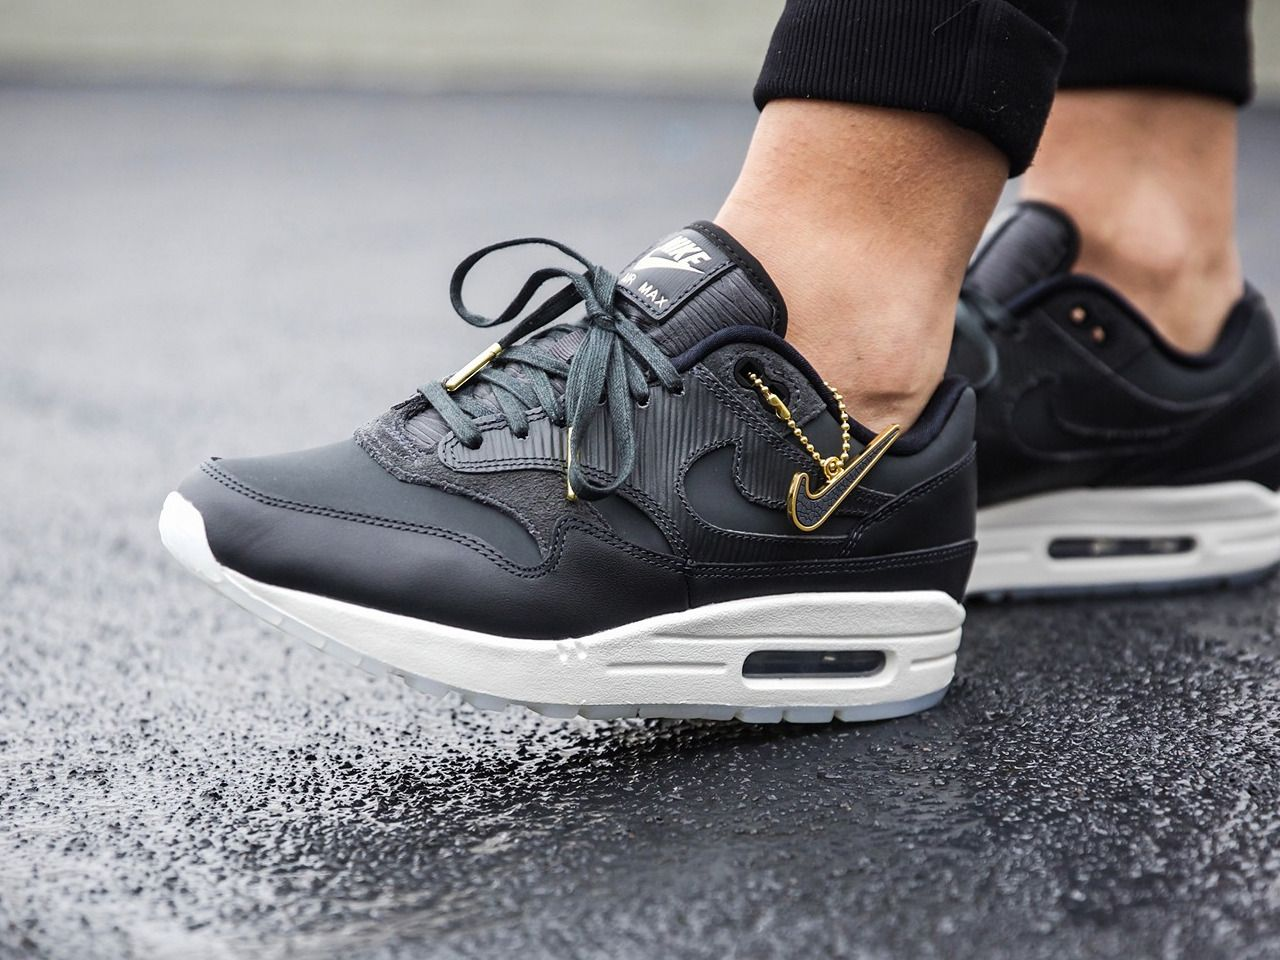 sale retailer 6be50 12c03 Nike wmns Air Max 1 Premium - Anthracite Black - 2017 (by ginogold) Buy here